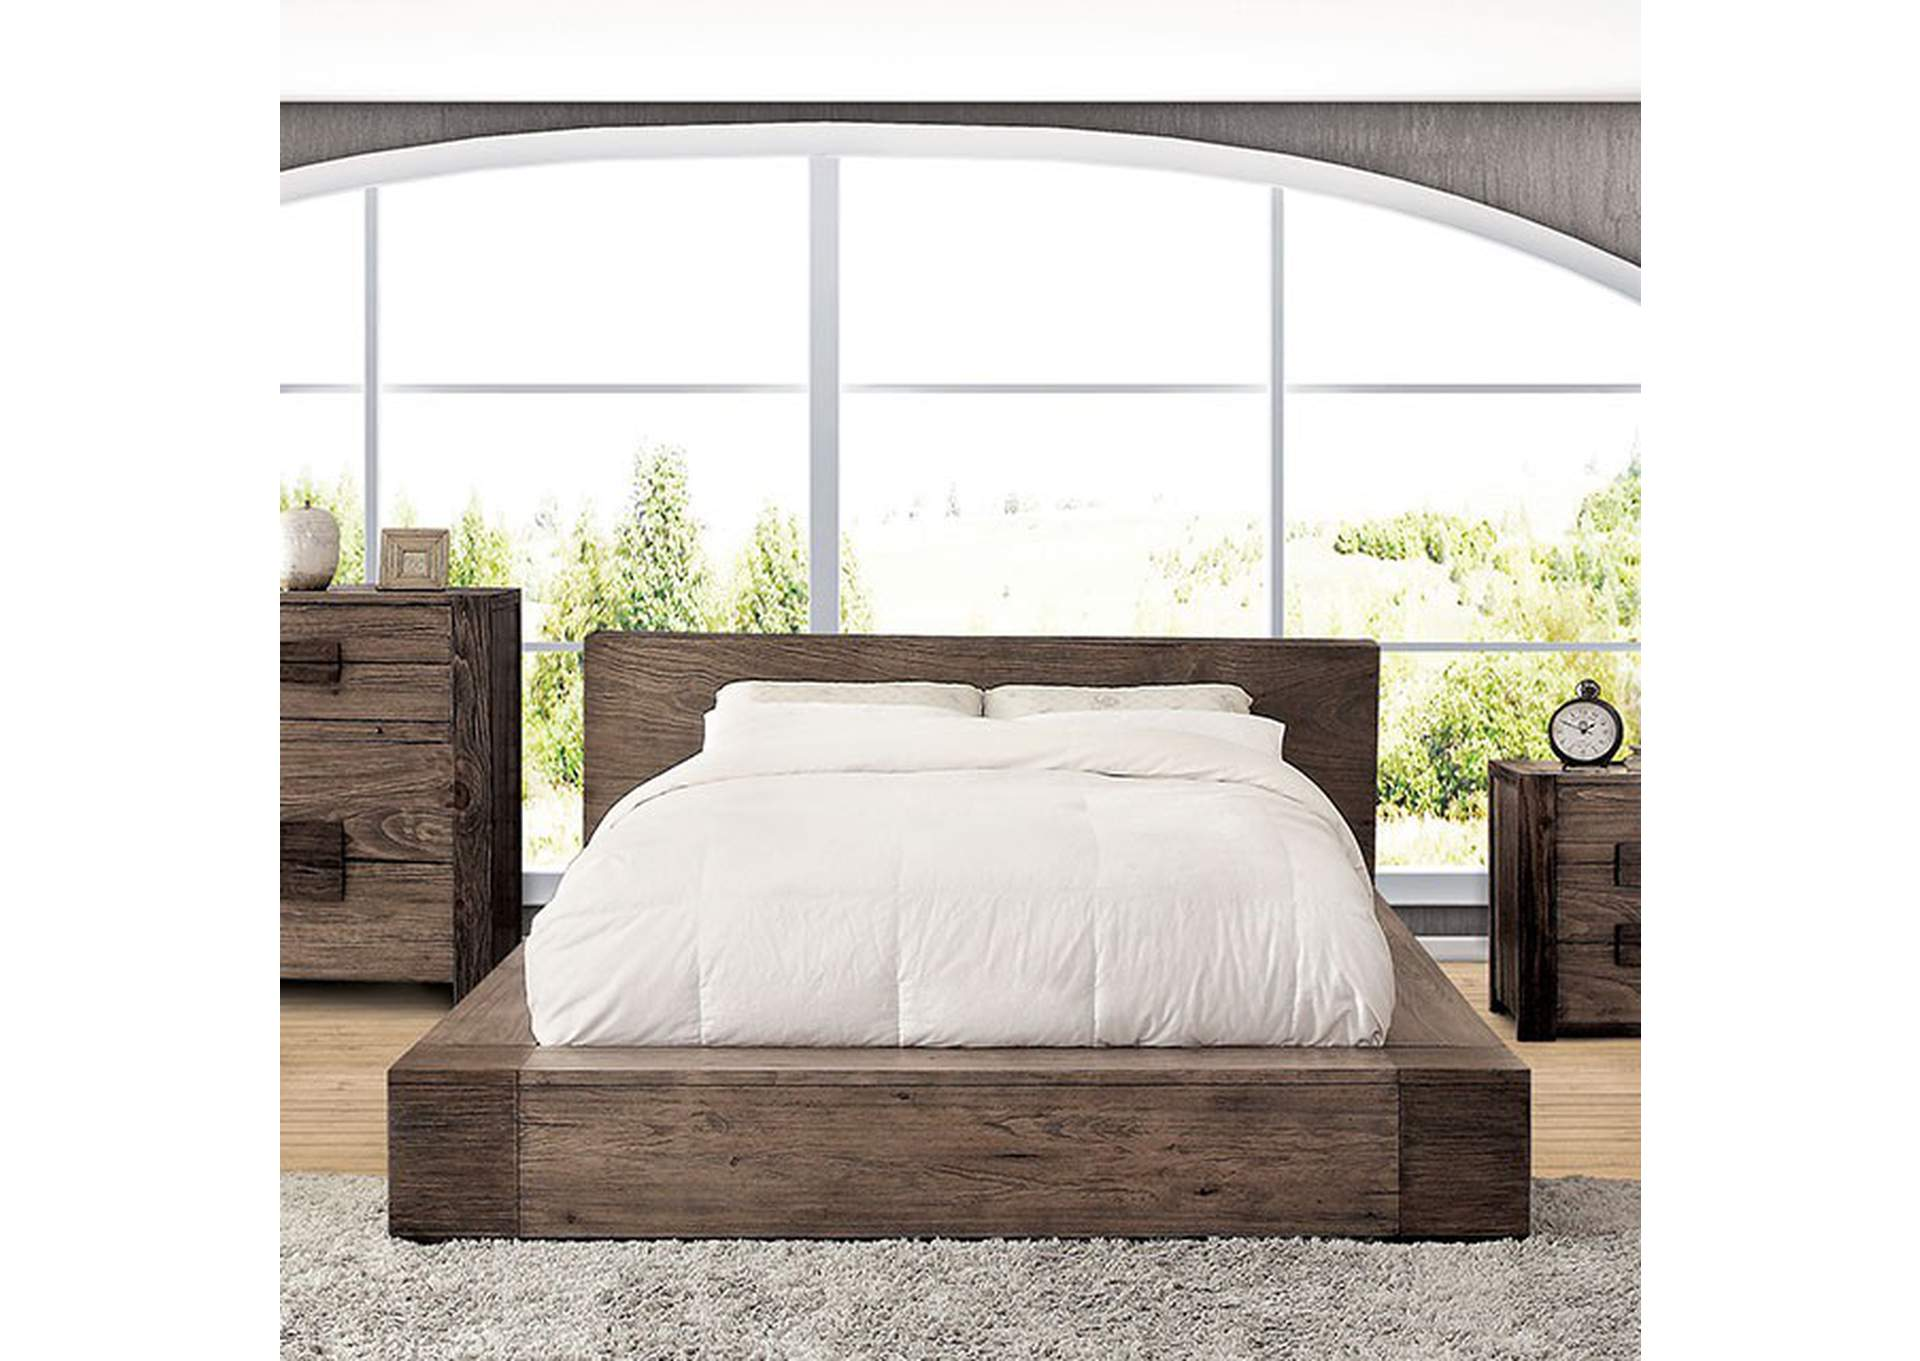 Janeiro Rustic Natural Tone Queen Platform Bed,Furniture of America